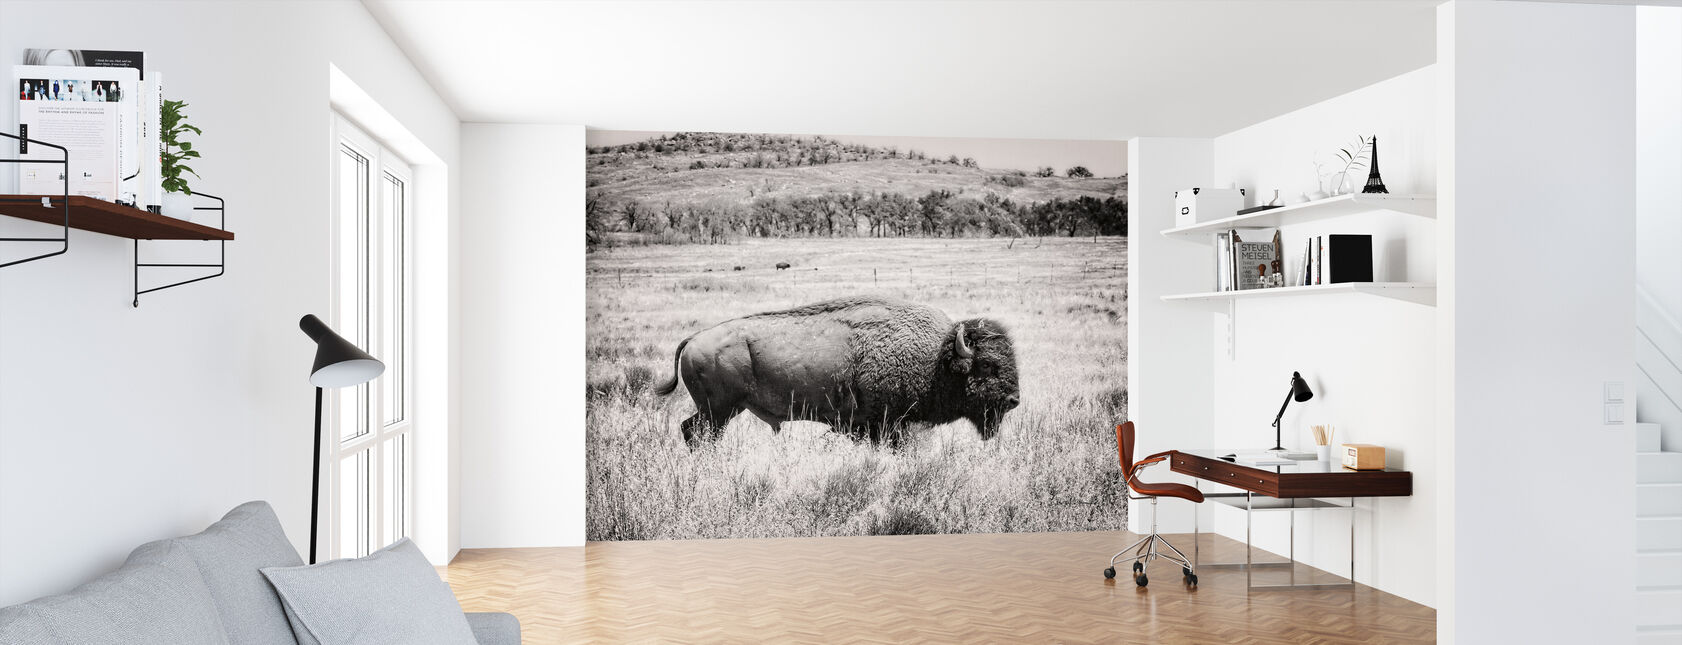 Buffalo - Wallpaper - Office